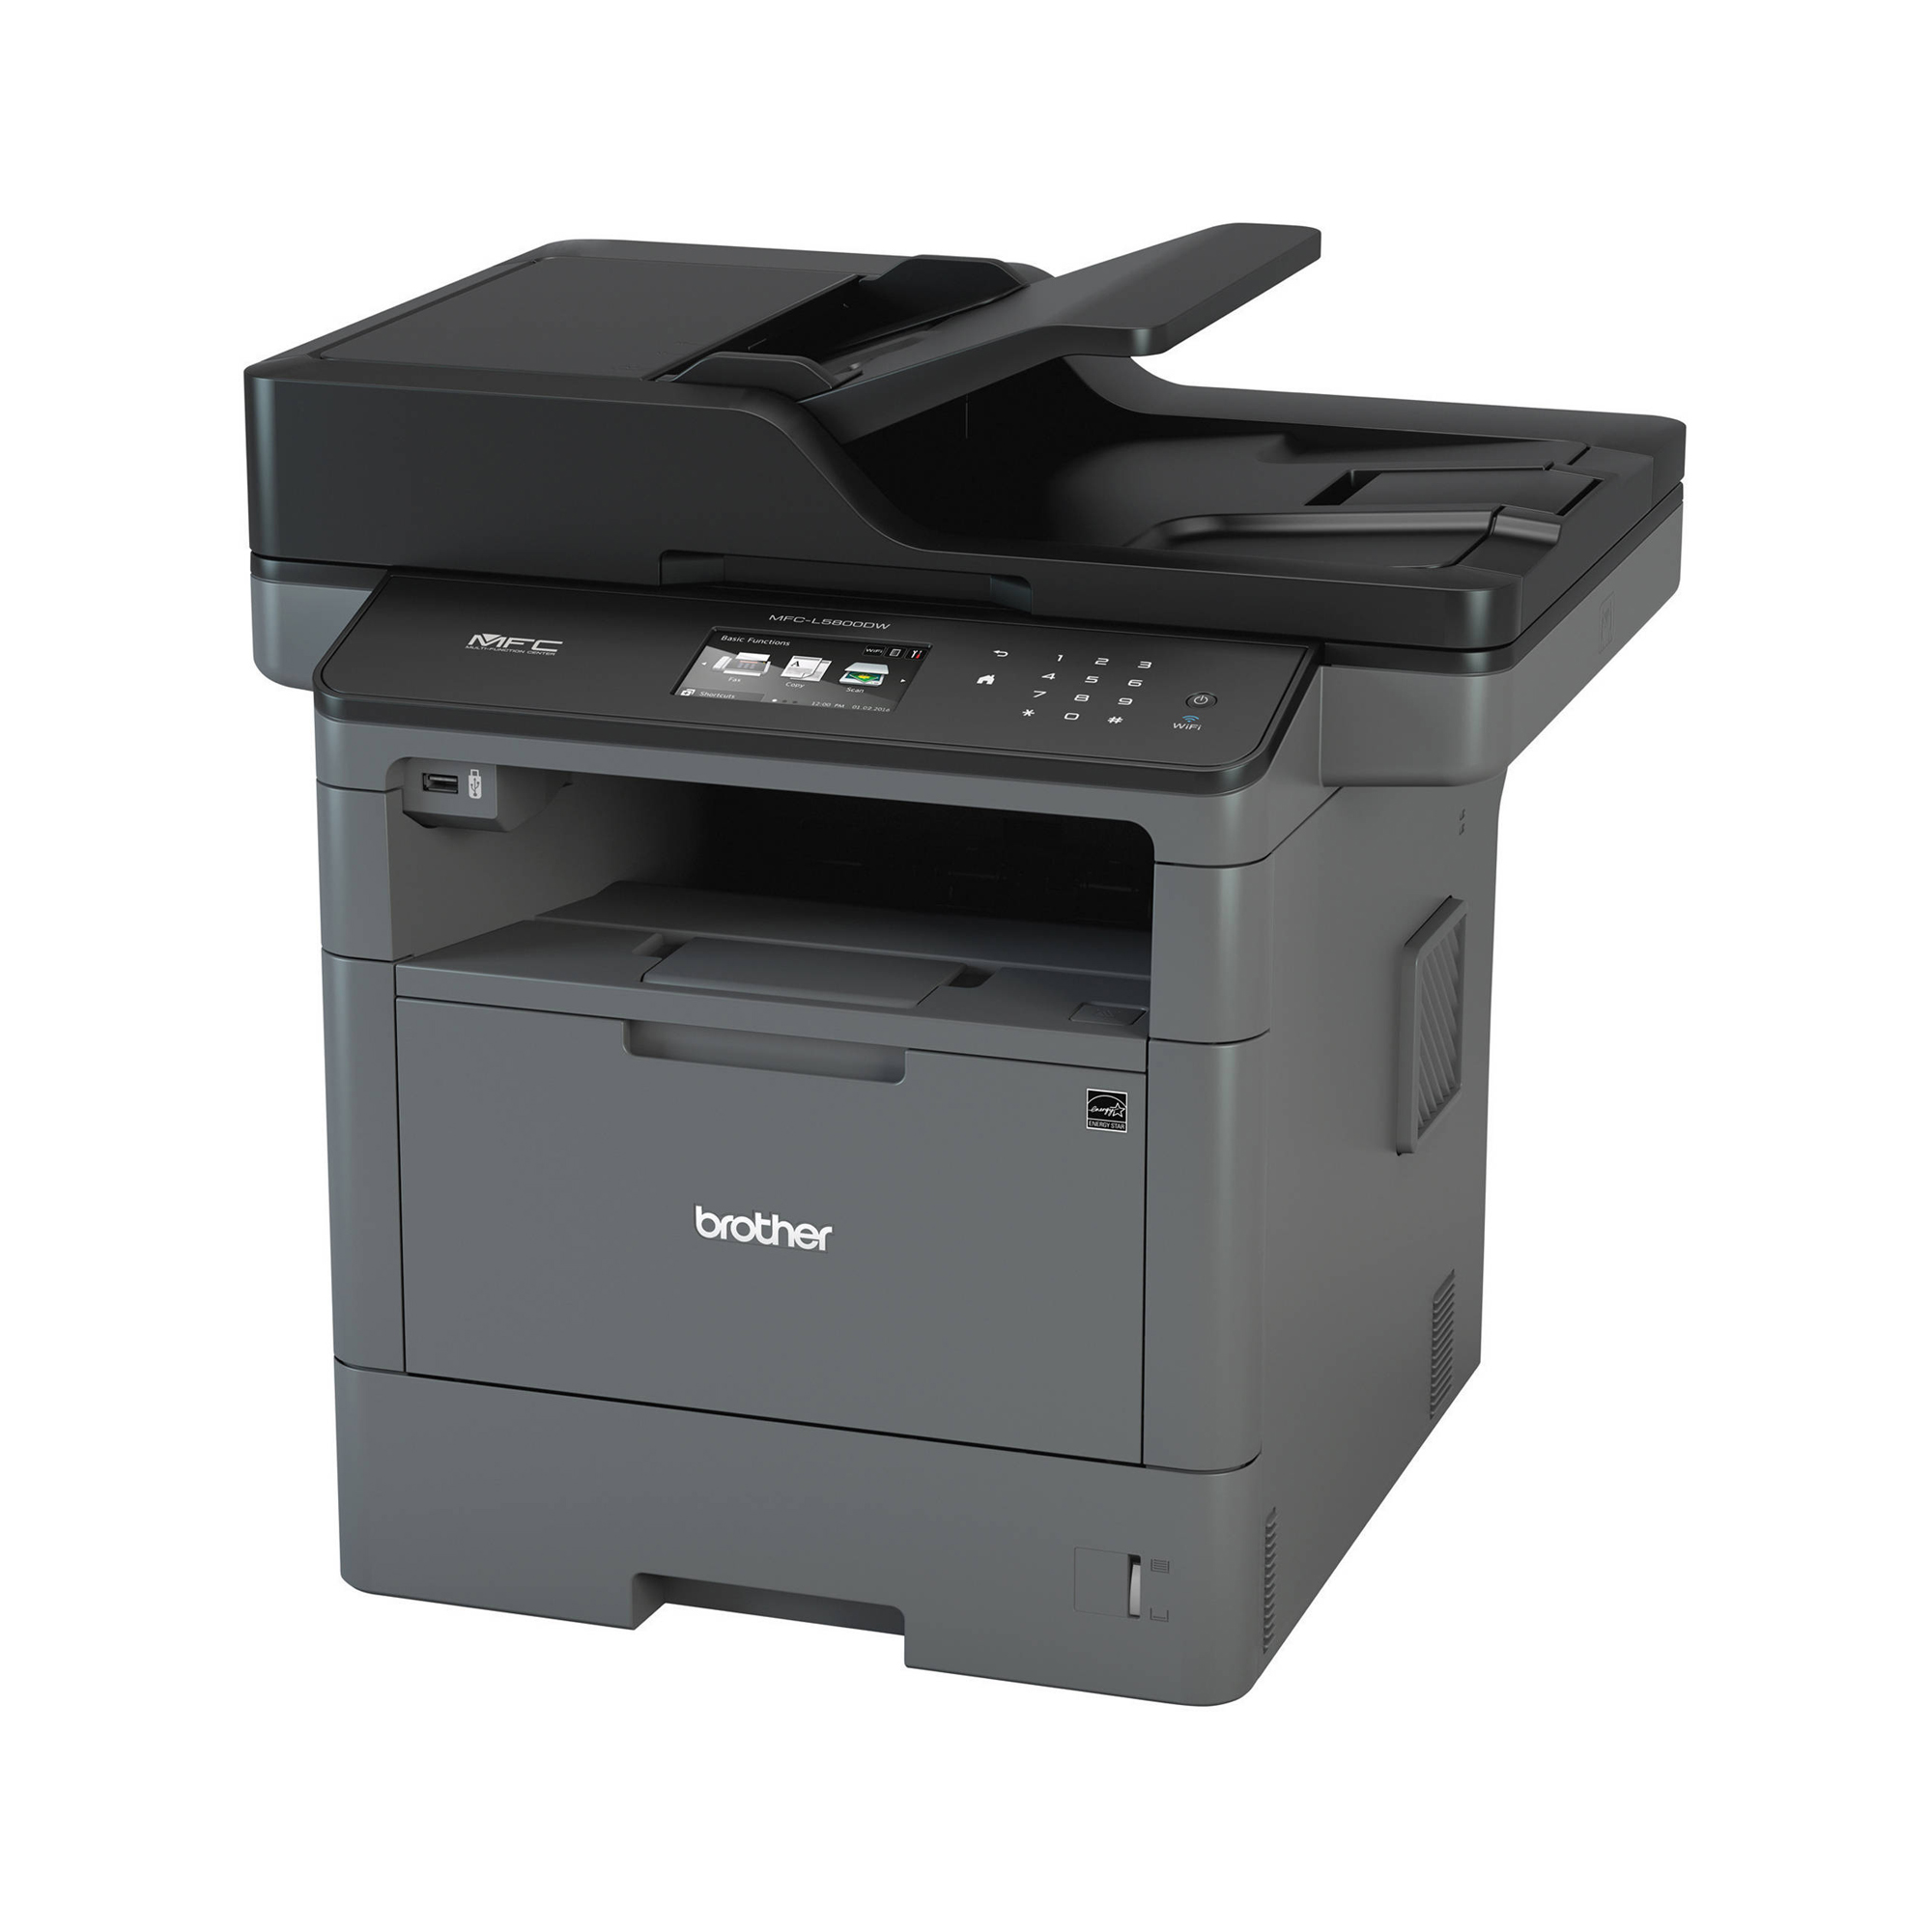 Brother MFC-L5800DW Digital Fax, Print, Copy Scan Technology